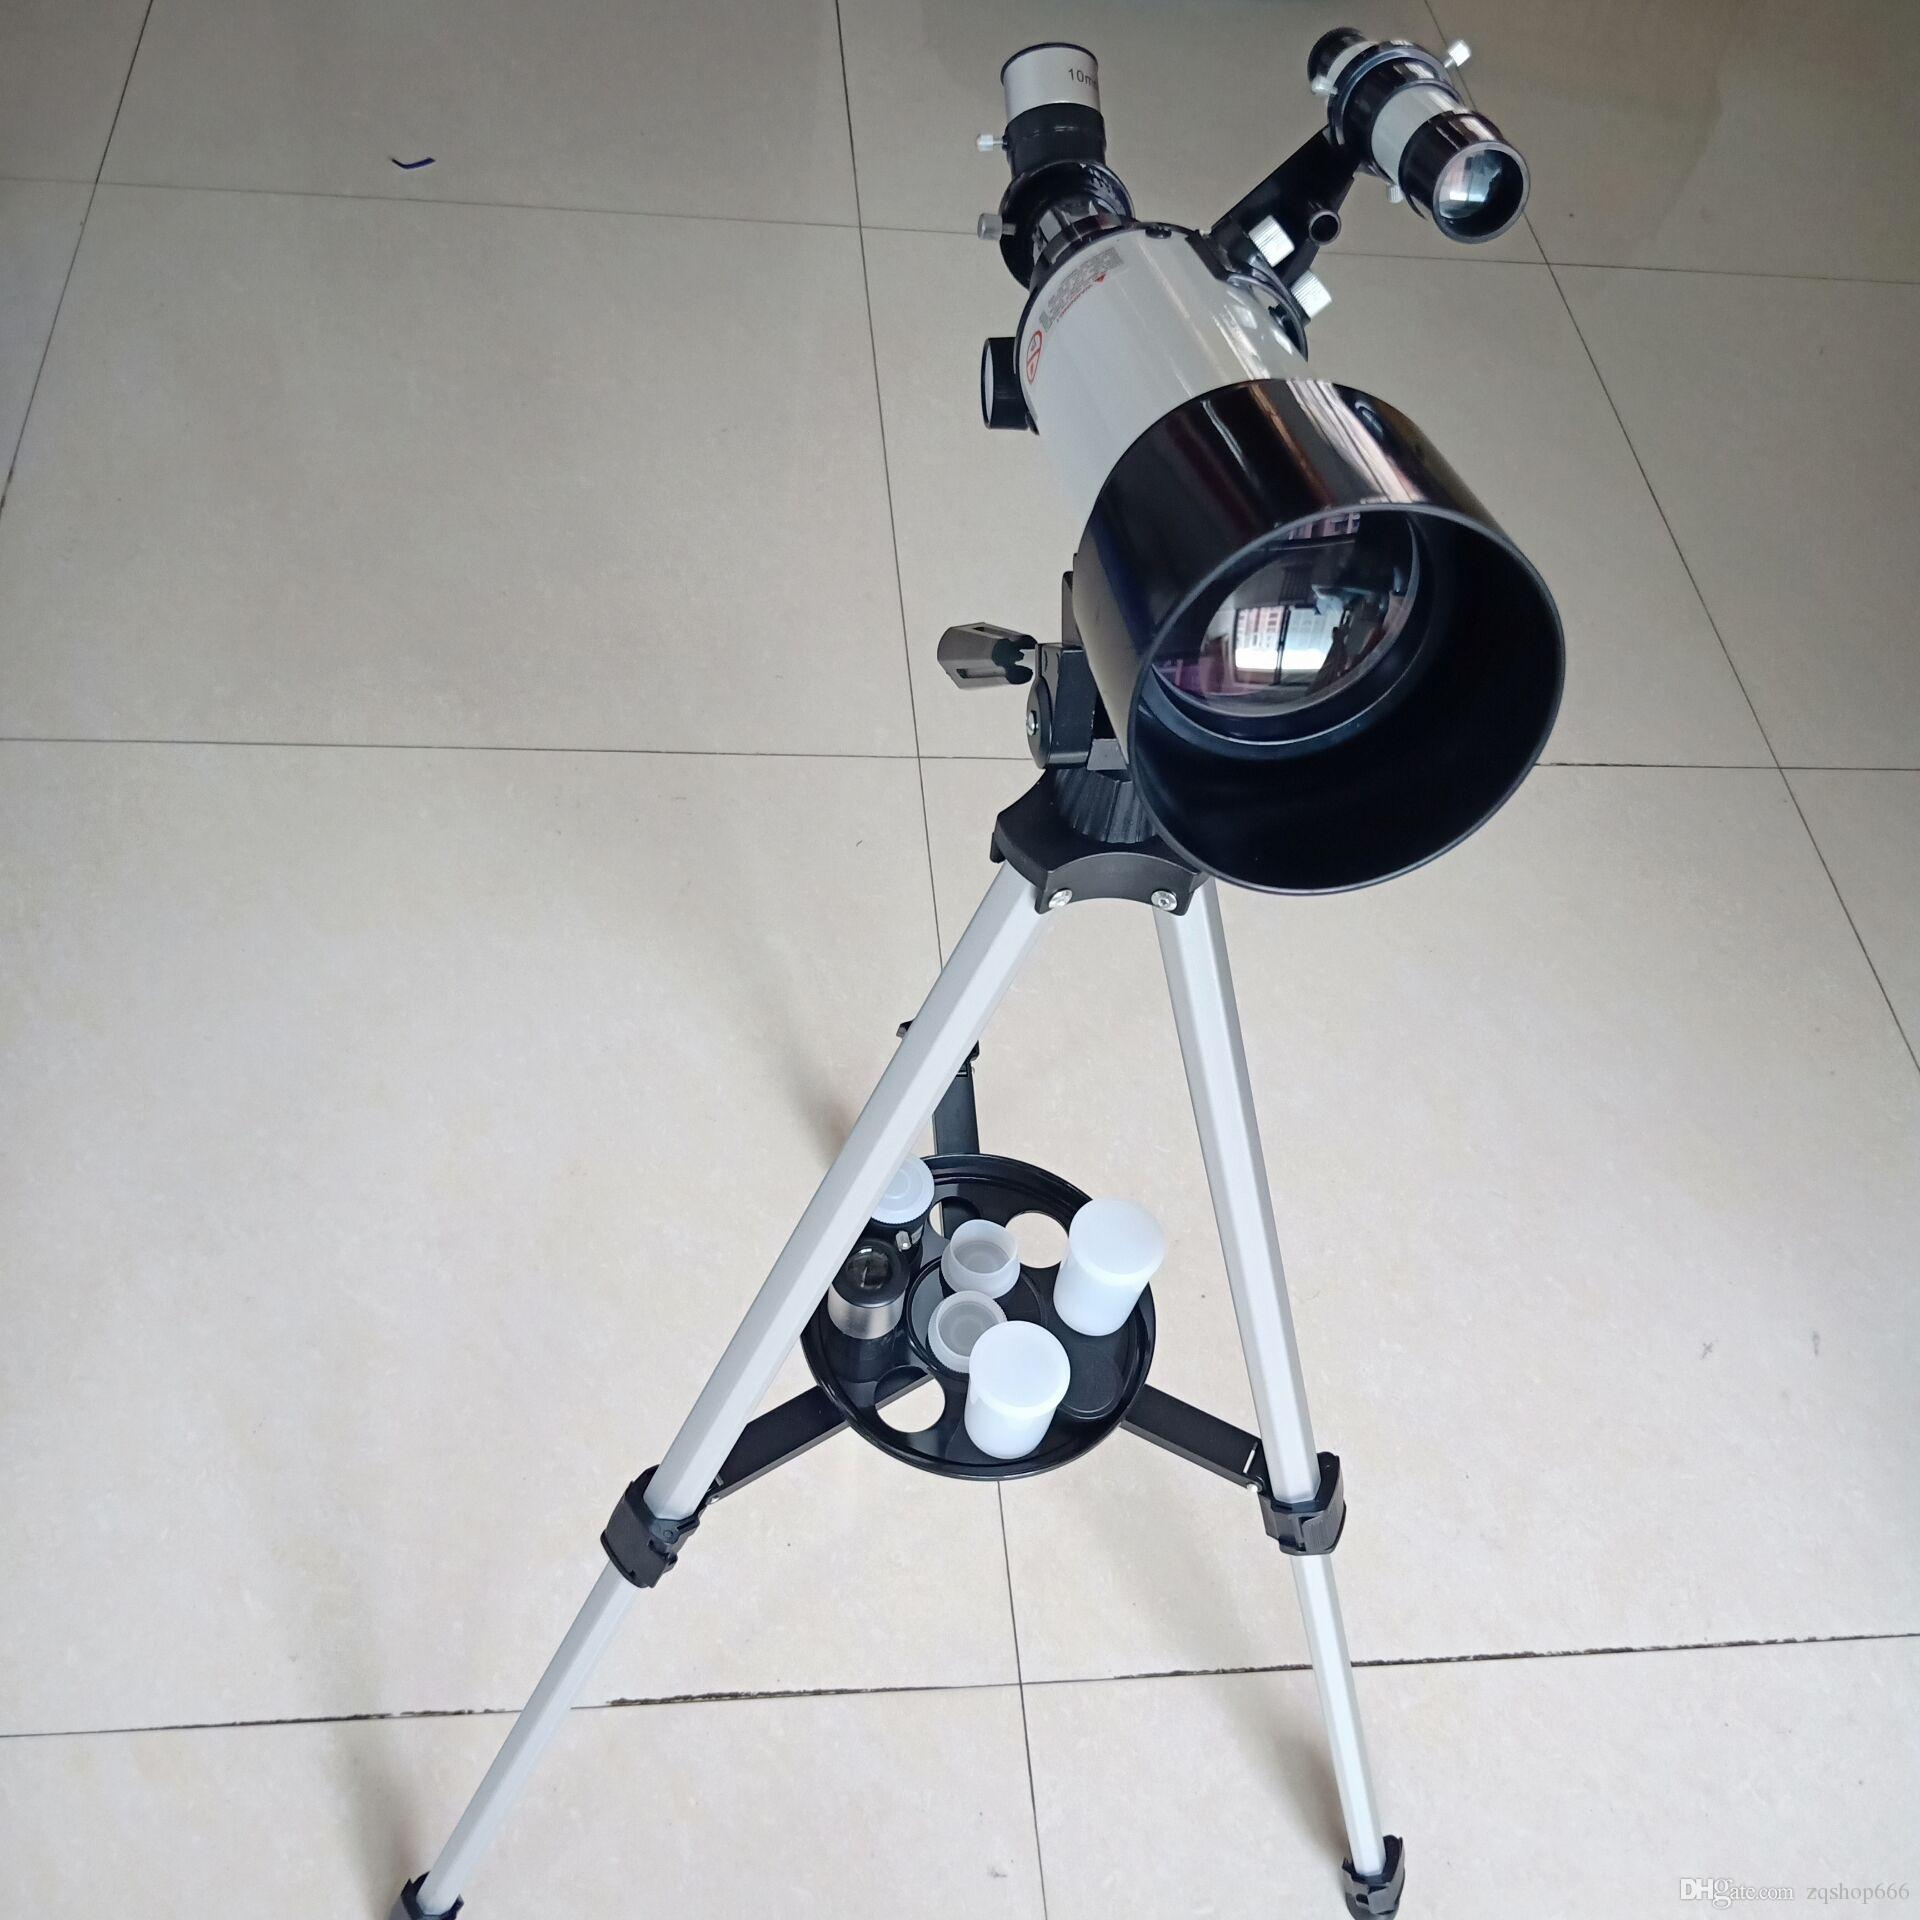 2020 fathion and inexpensive Student entry-level astronomical telescope,Passage diameter: 70mm Focal length400mm.f/4.3 Eyepiece:1